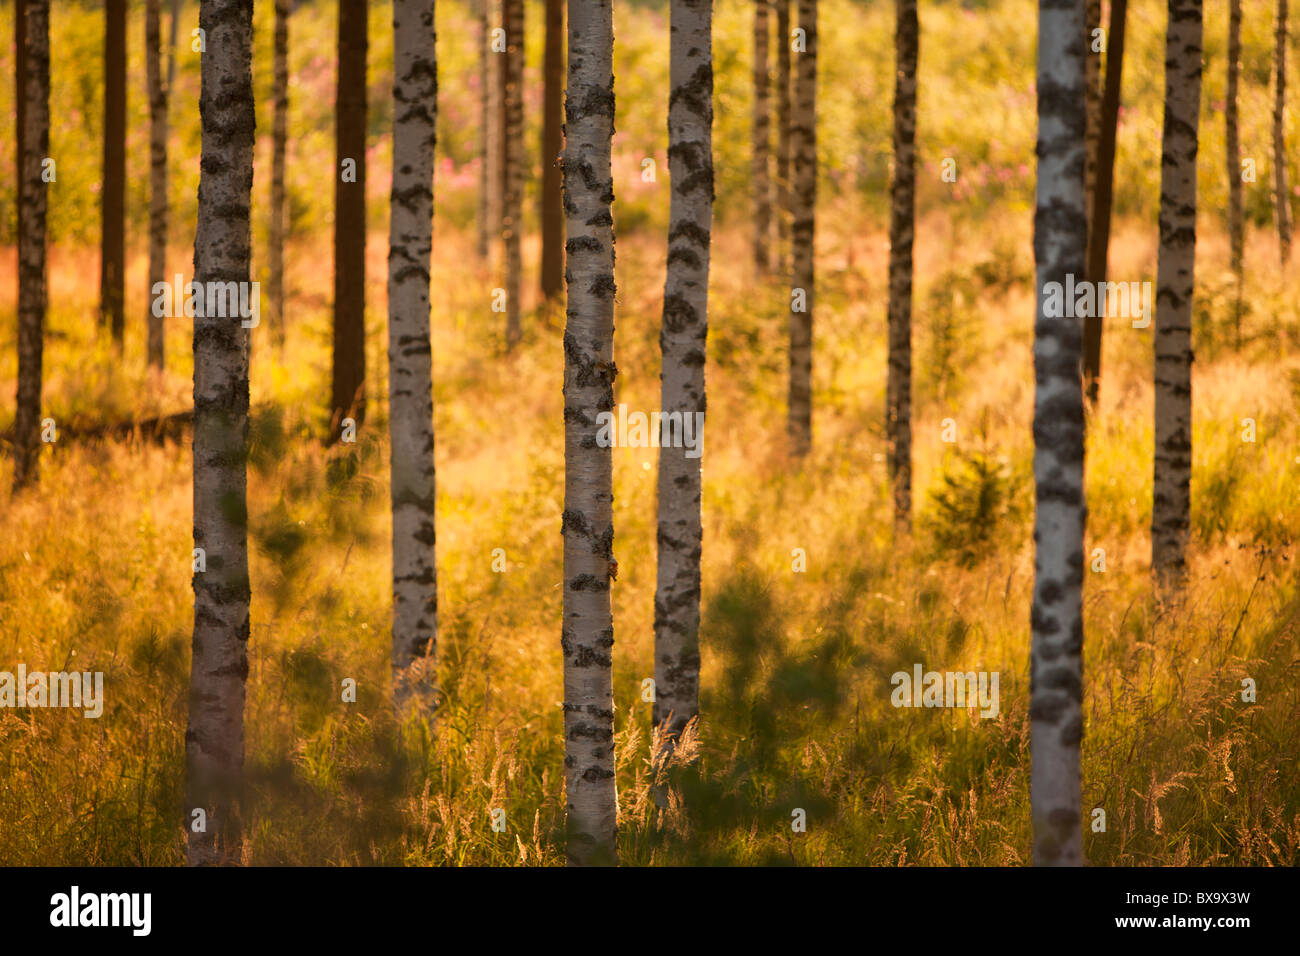 View of group of young birch ( betula ) trees at evening sun - Stock Image